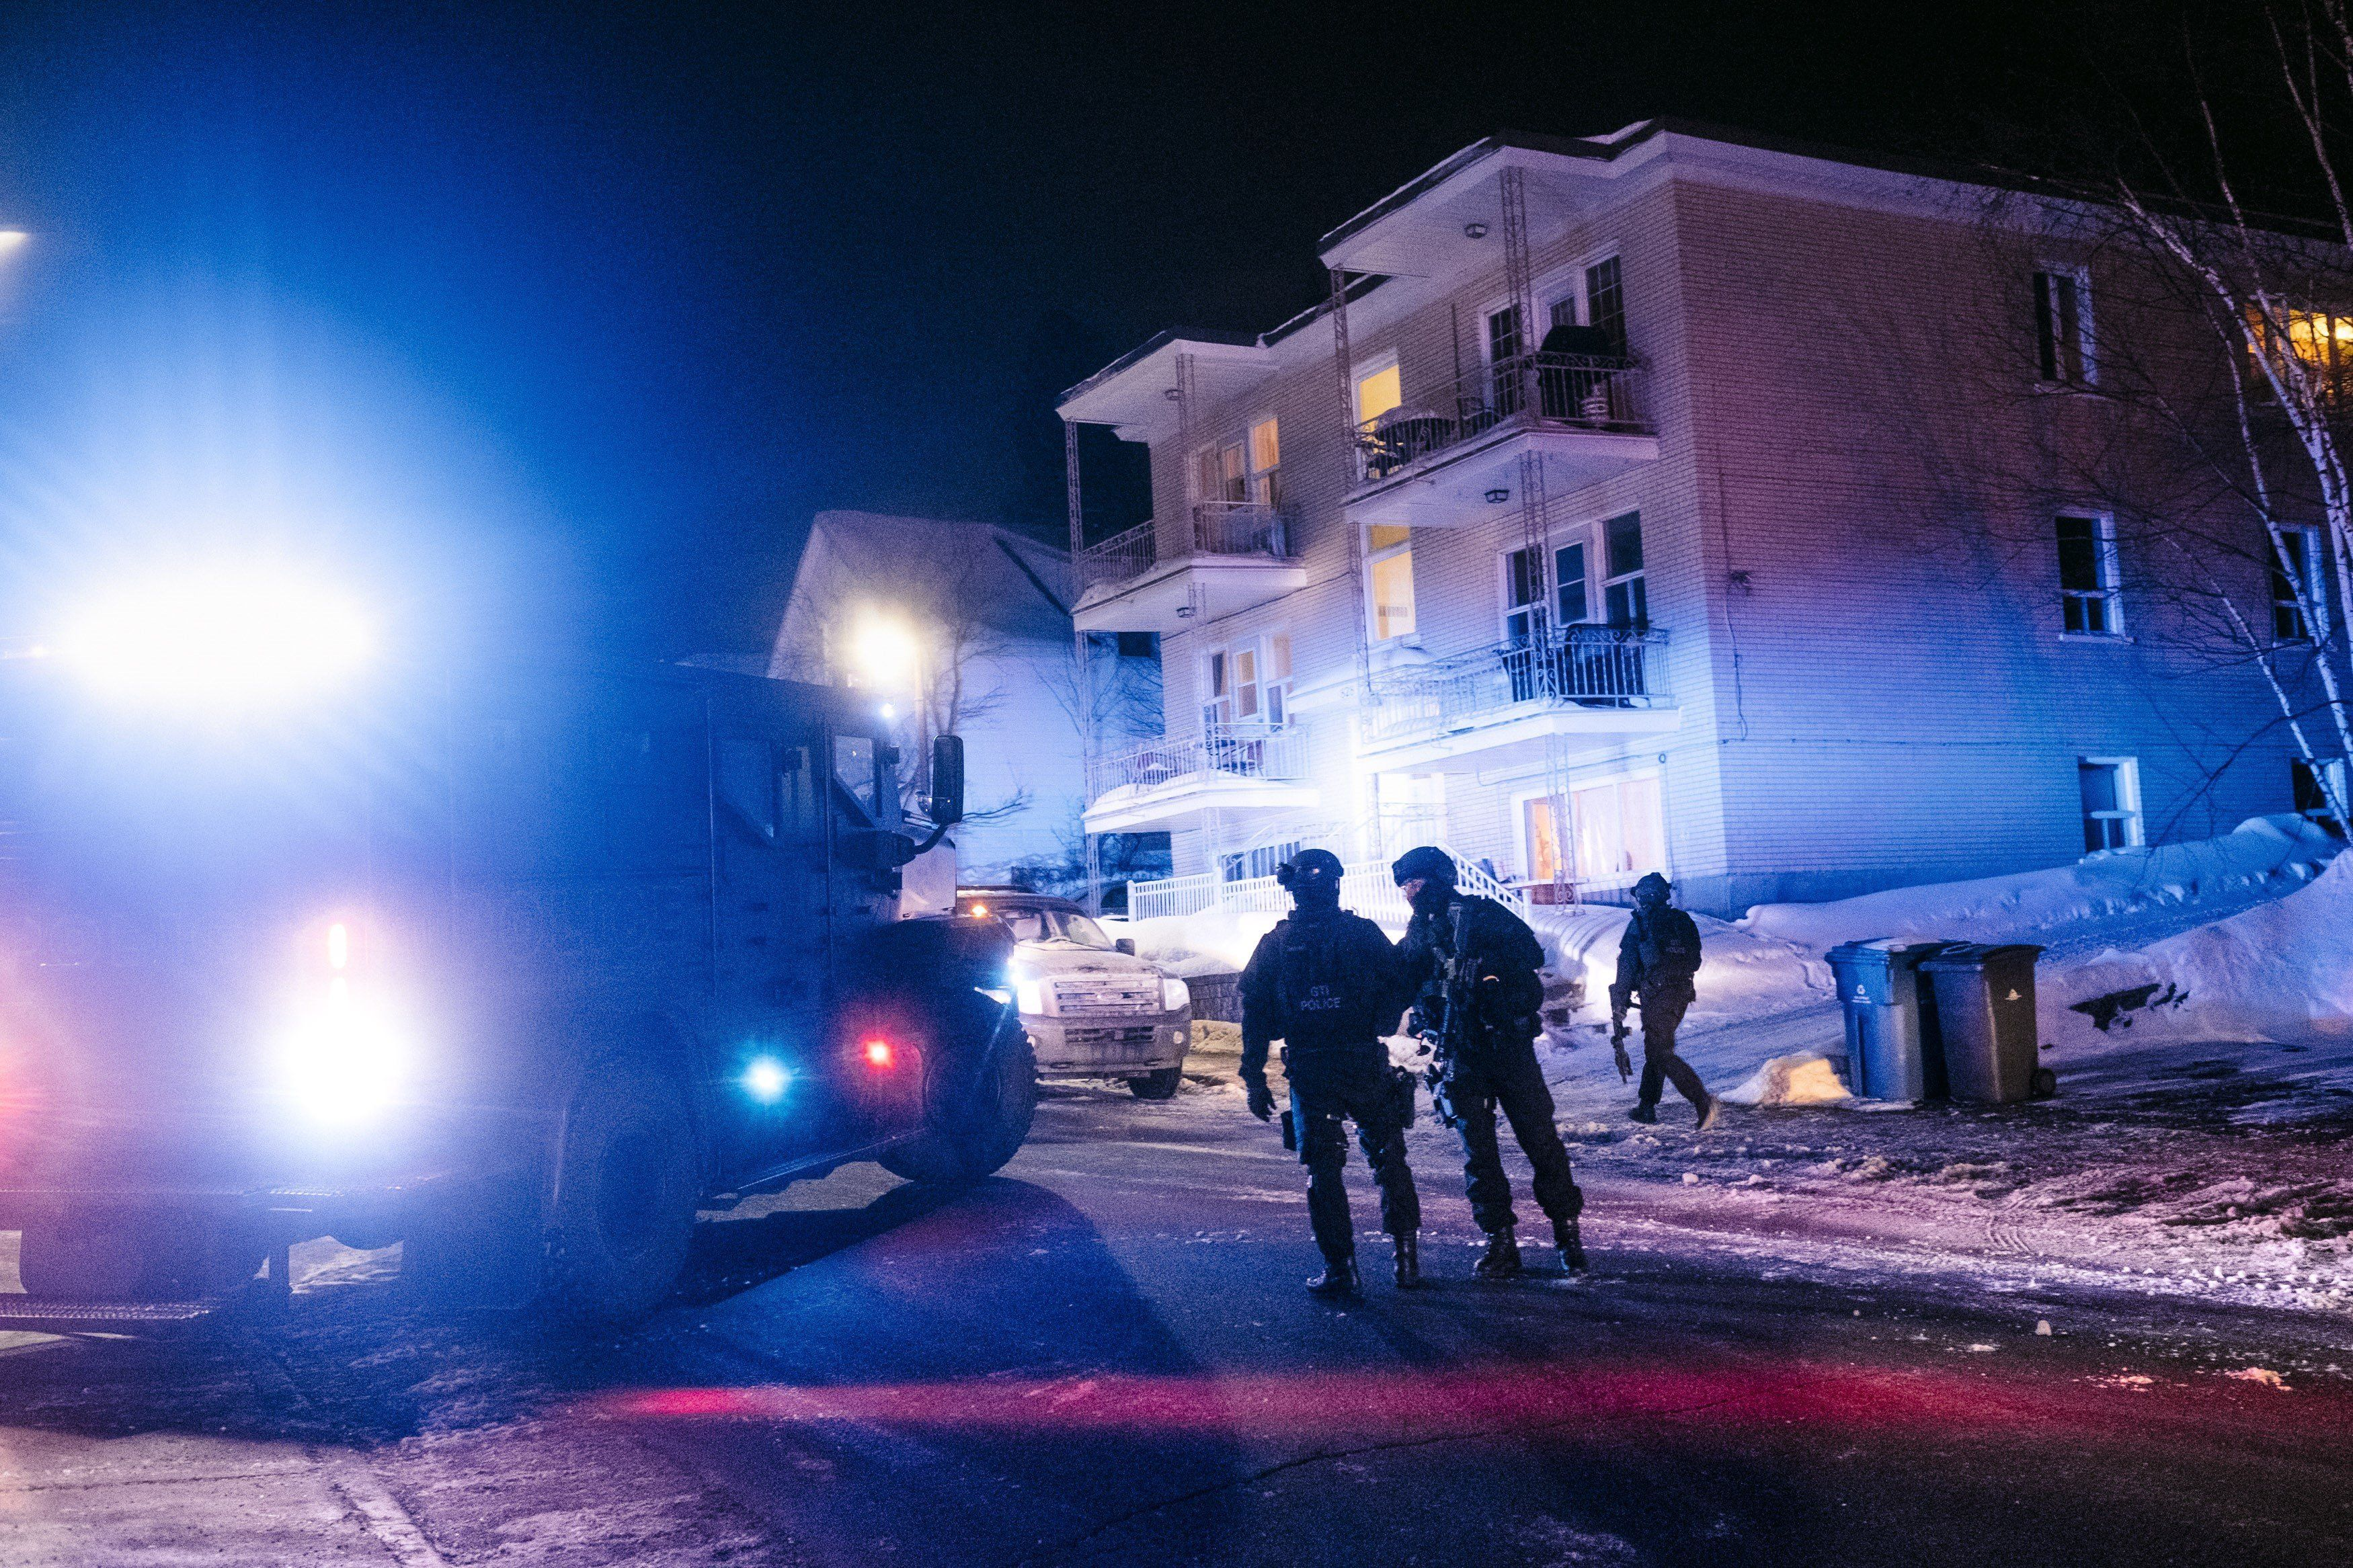 QUEBEC,CANADA - JANUARY 29: Canadian security forces patrol after a shooting in the Islamic Cultural Centre of Quebec in Quebec city on January 29, 2017. Five people are dead and a number of others wounded in a shooting at a mosque in Quebec City, the facility's president told media late Sunday. (Photo by Renaud Philippe/Anadolu Agency/Getty Images)